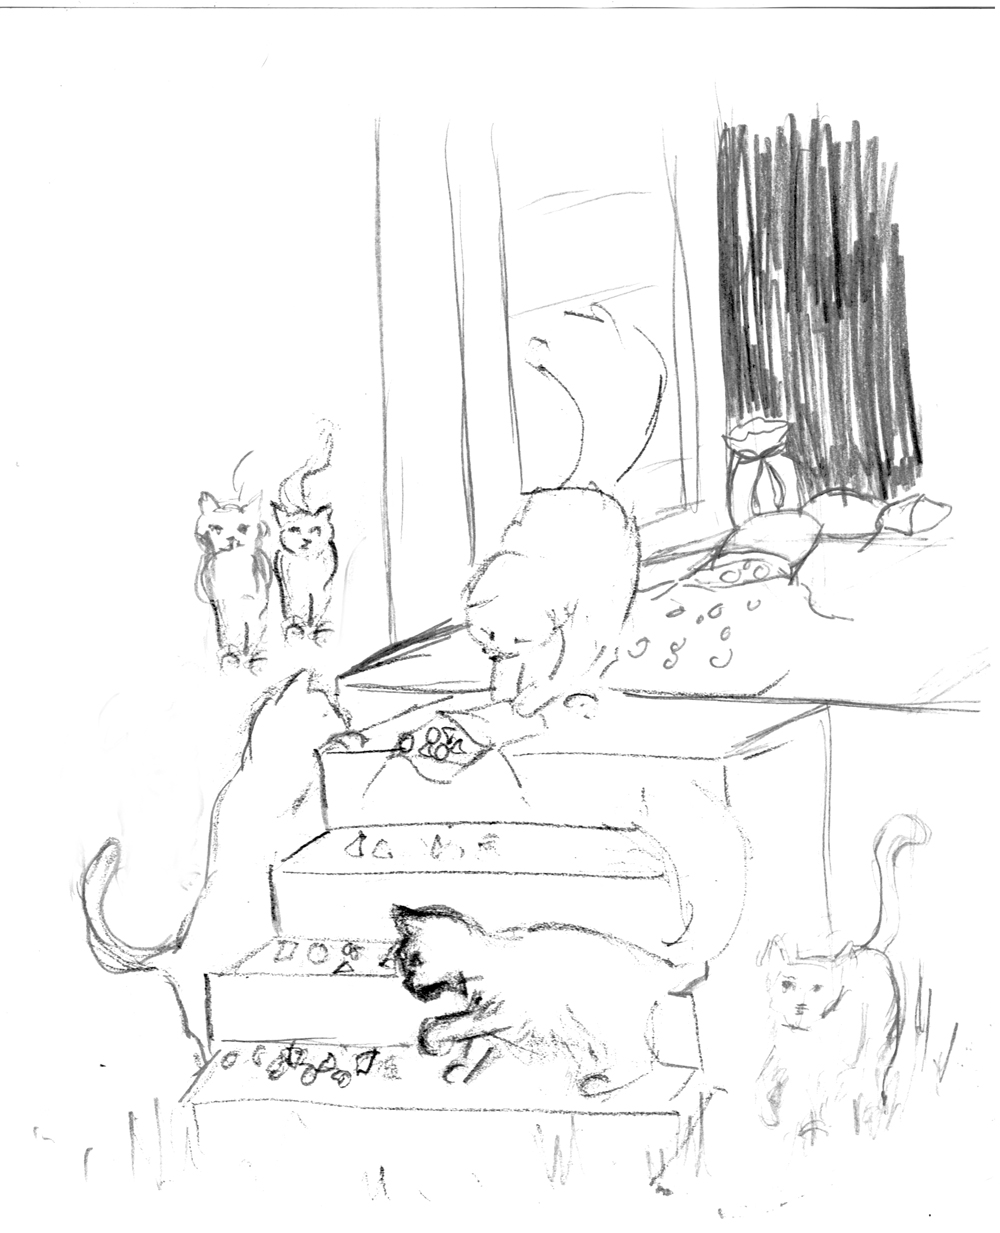 pencil sketch of cats on steps for illustration